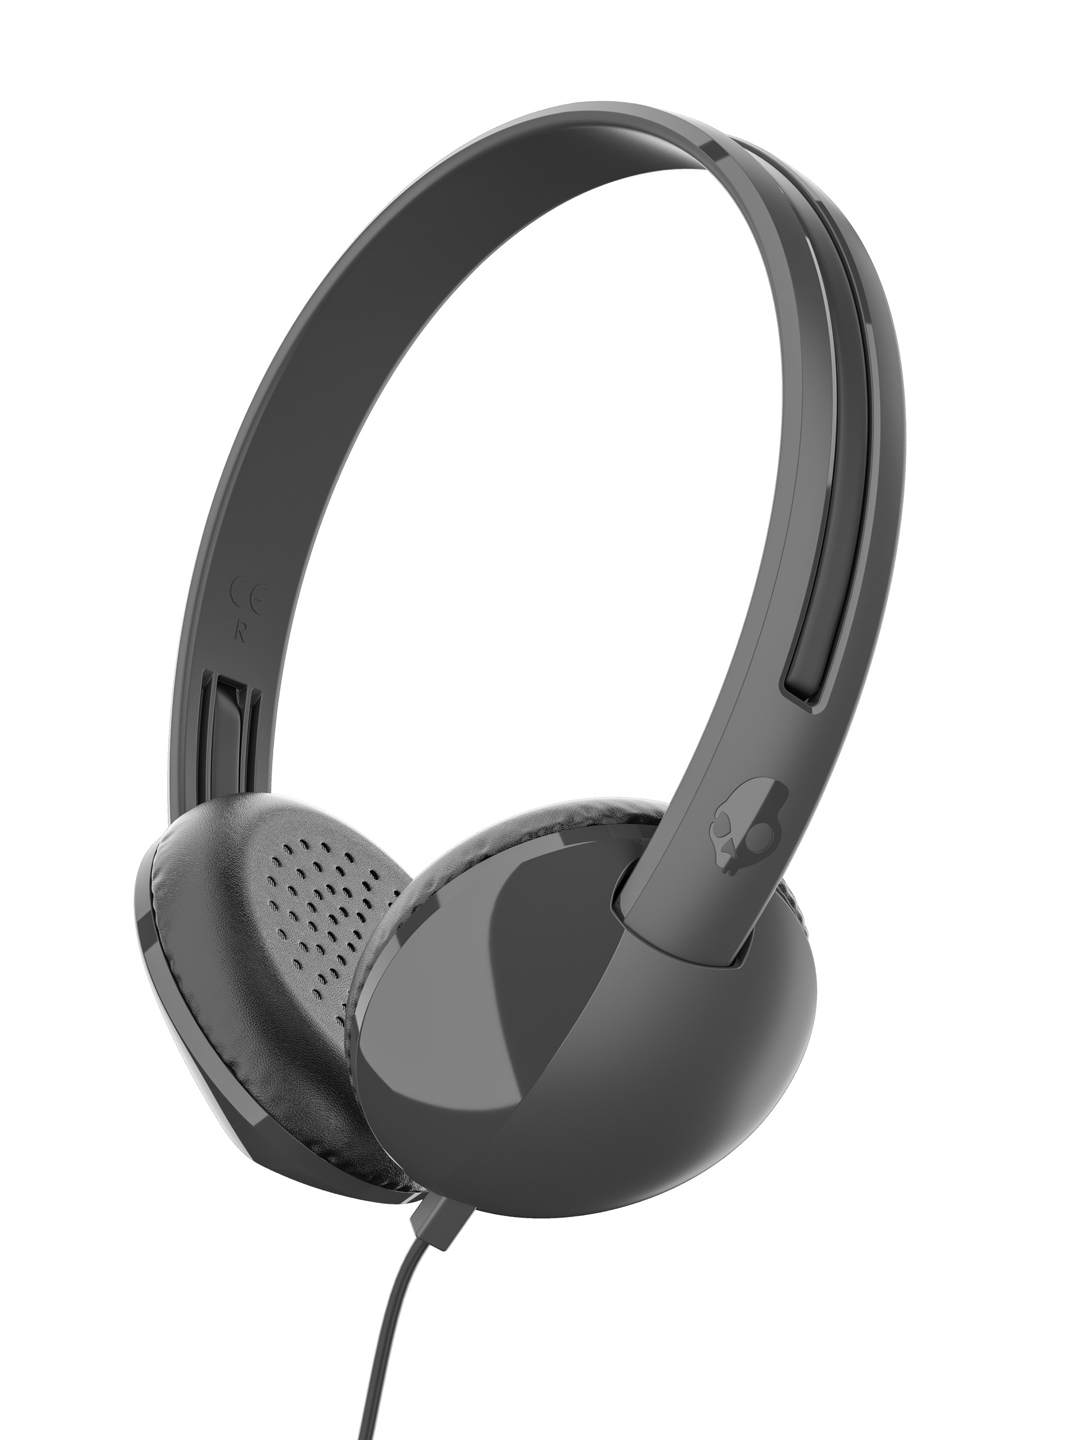 Skullcandy Charcoal Grey Stim Over Ear Headphones with Mic S2LHY K576